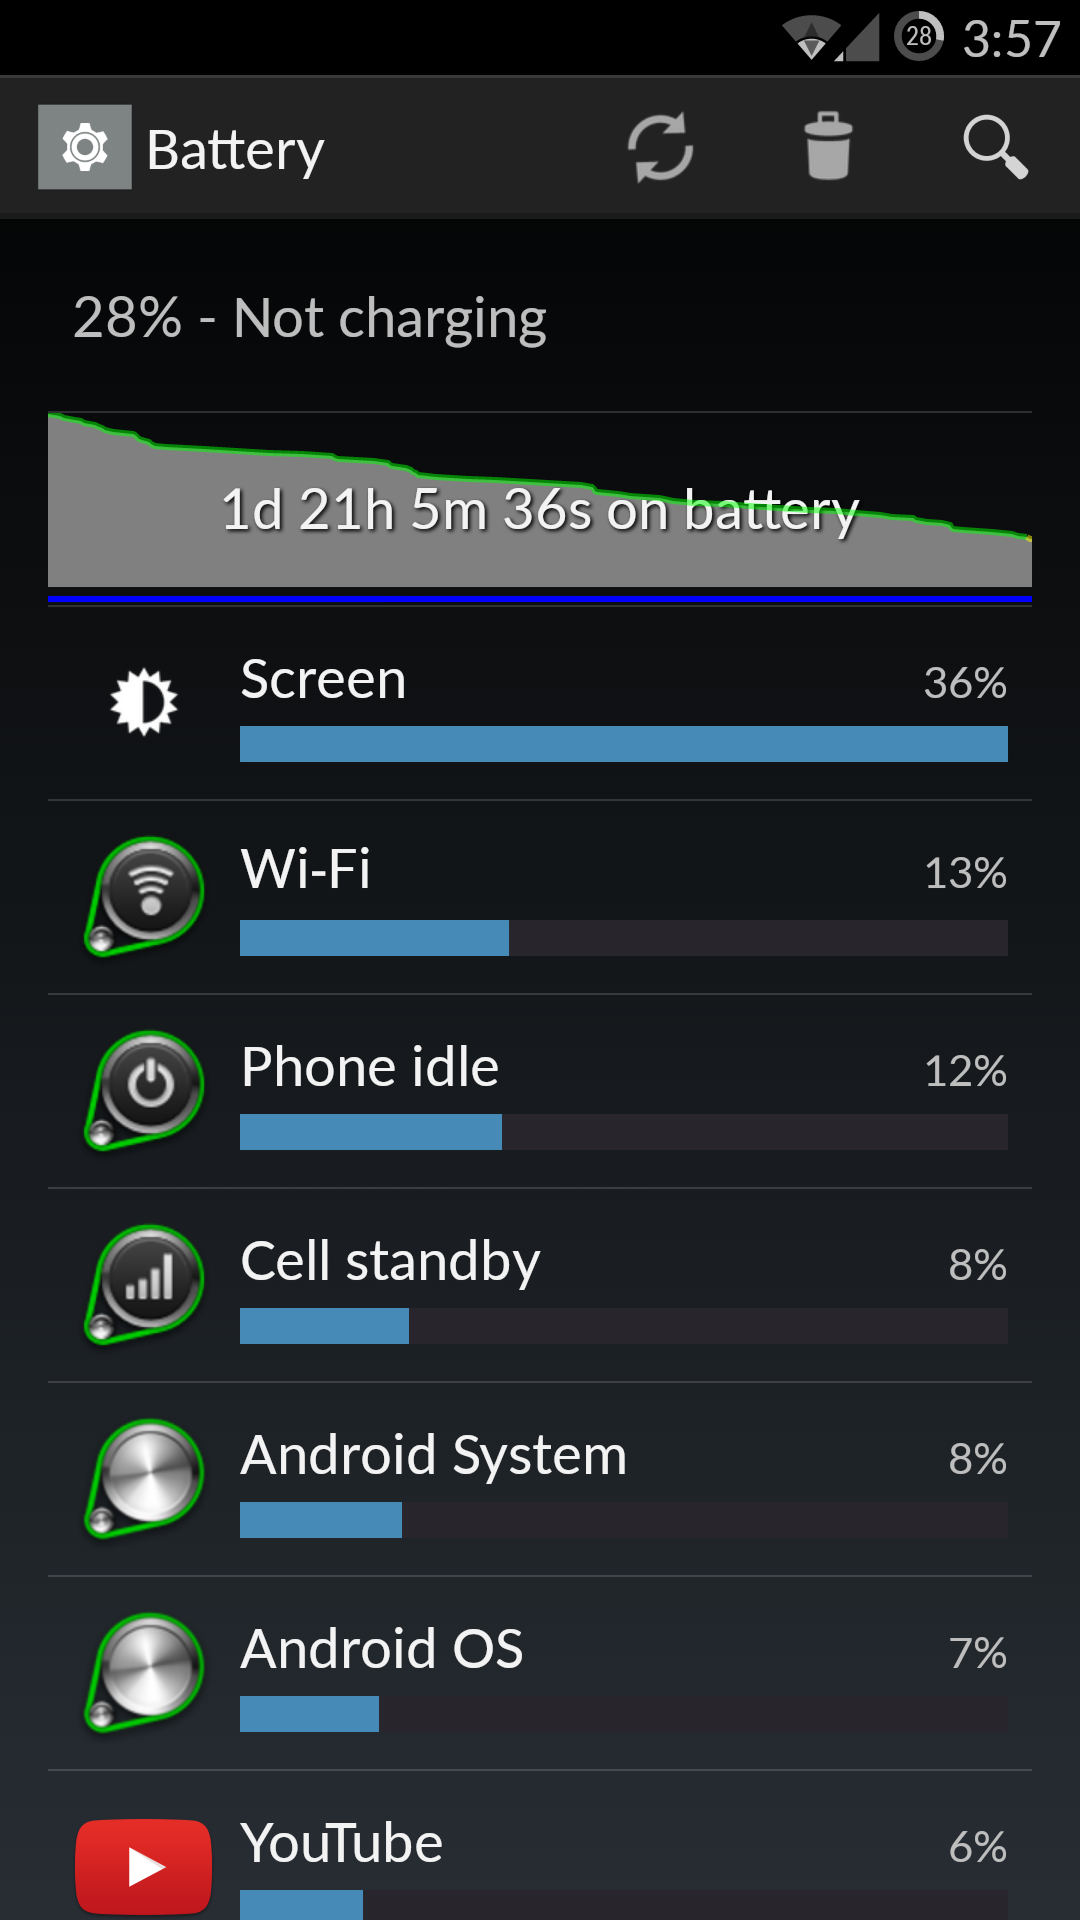 android incallui?android os and google play services eating battery